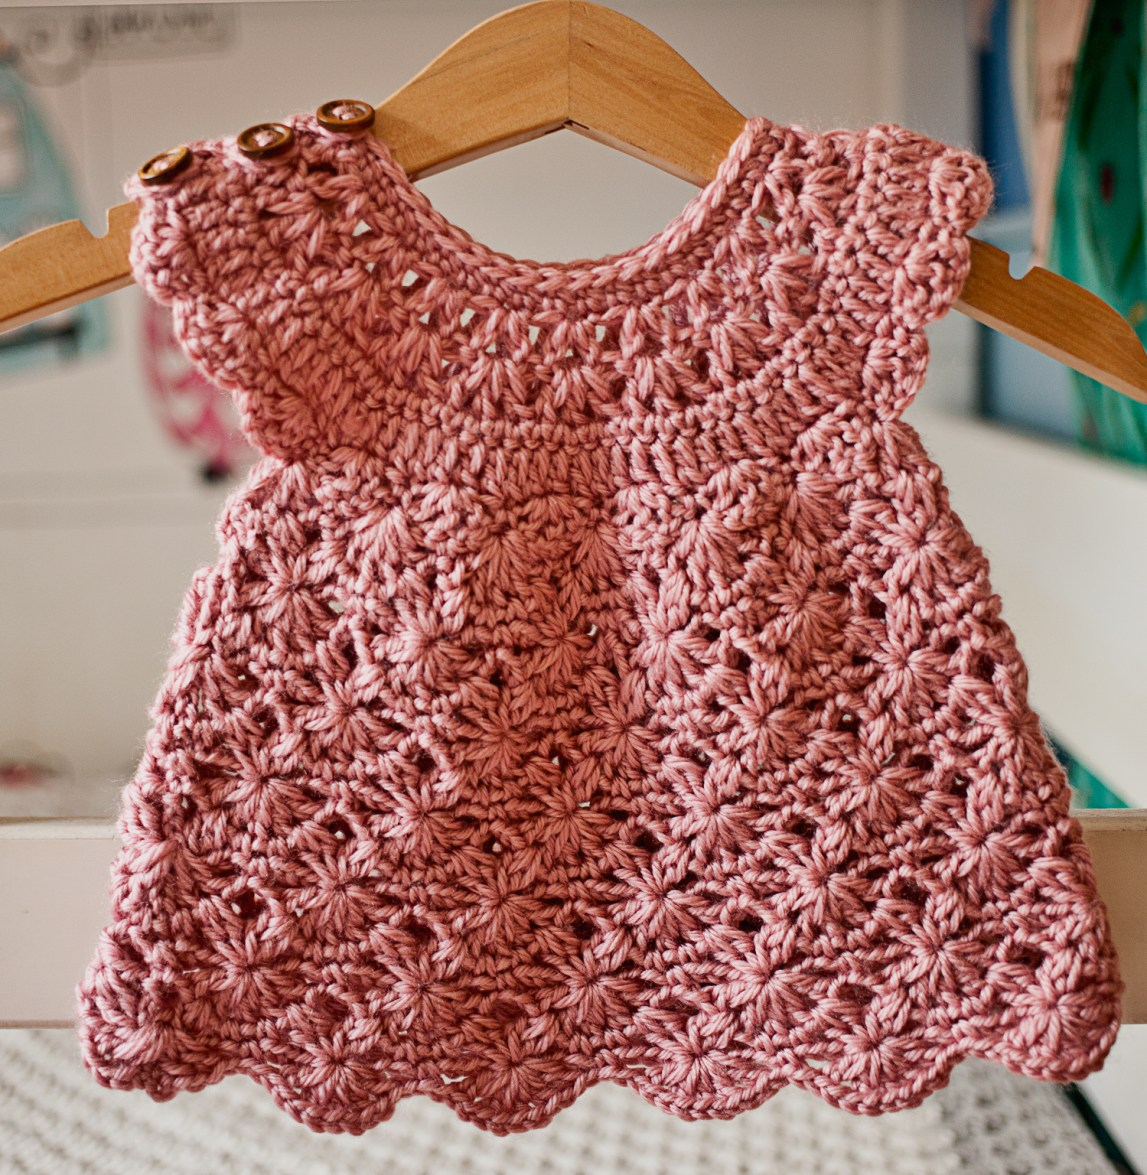 Rose Blush Dress, crochet pattern by Mon Petit Violon